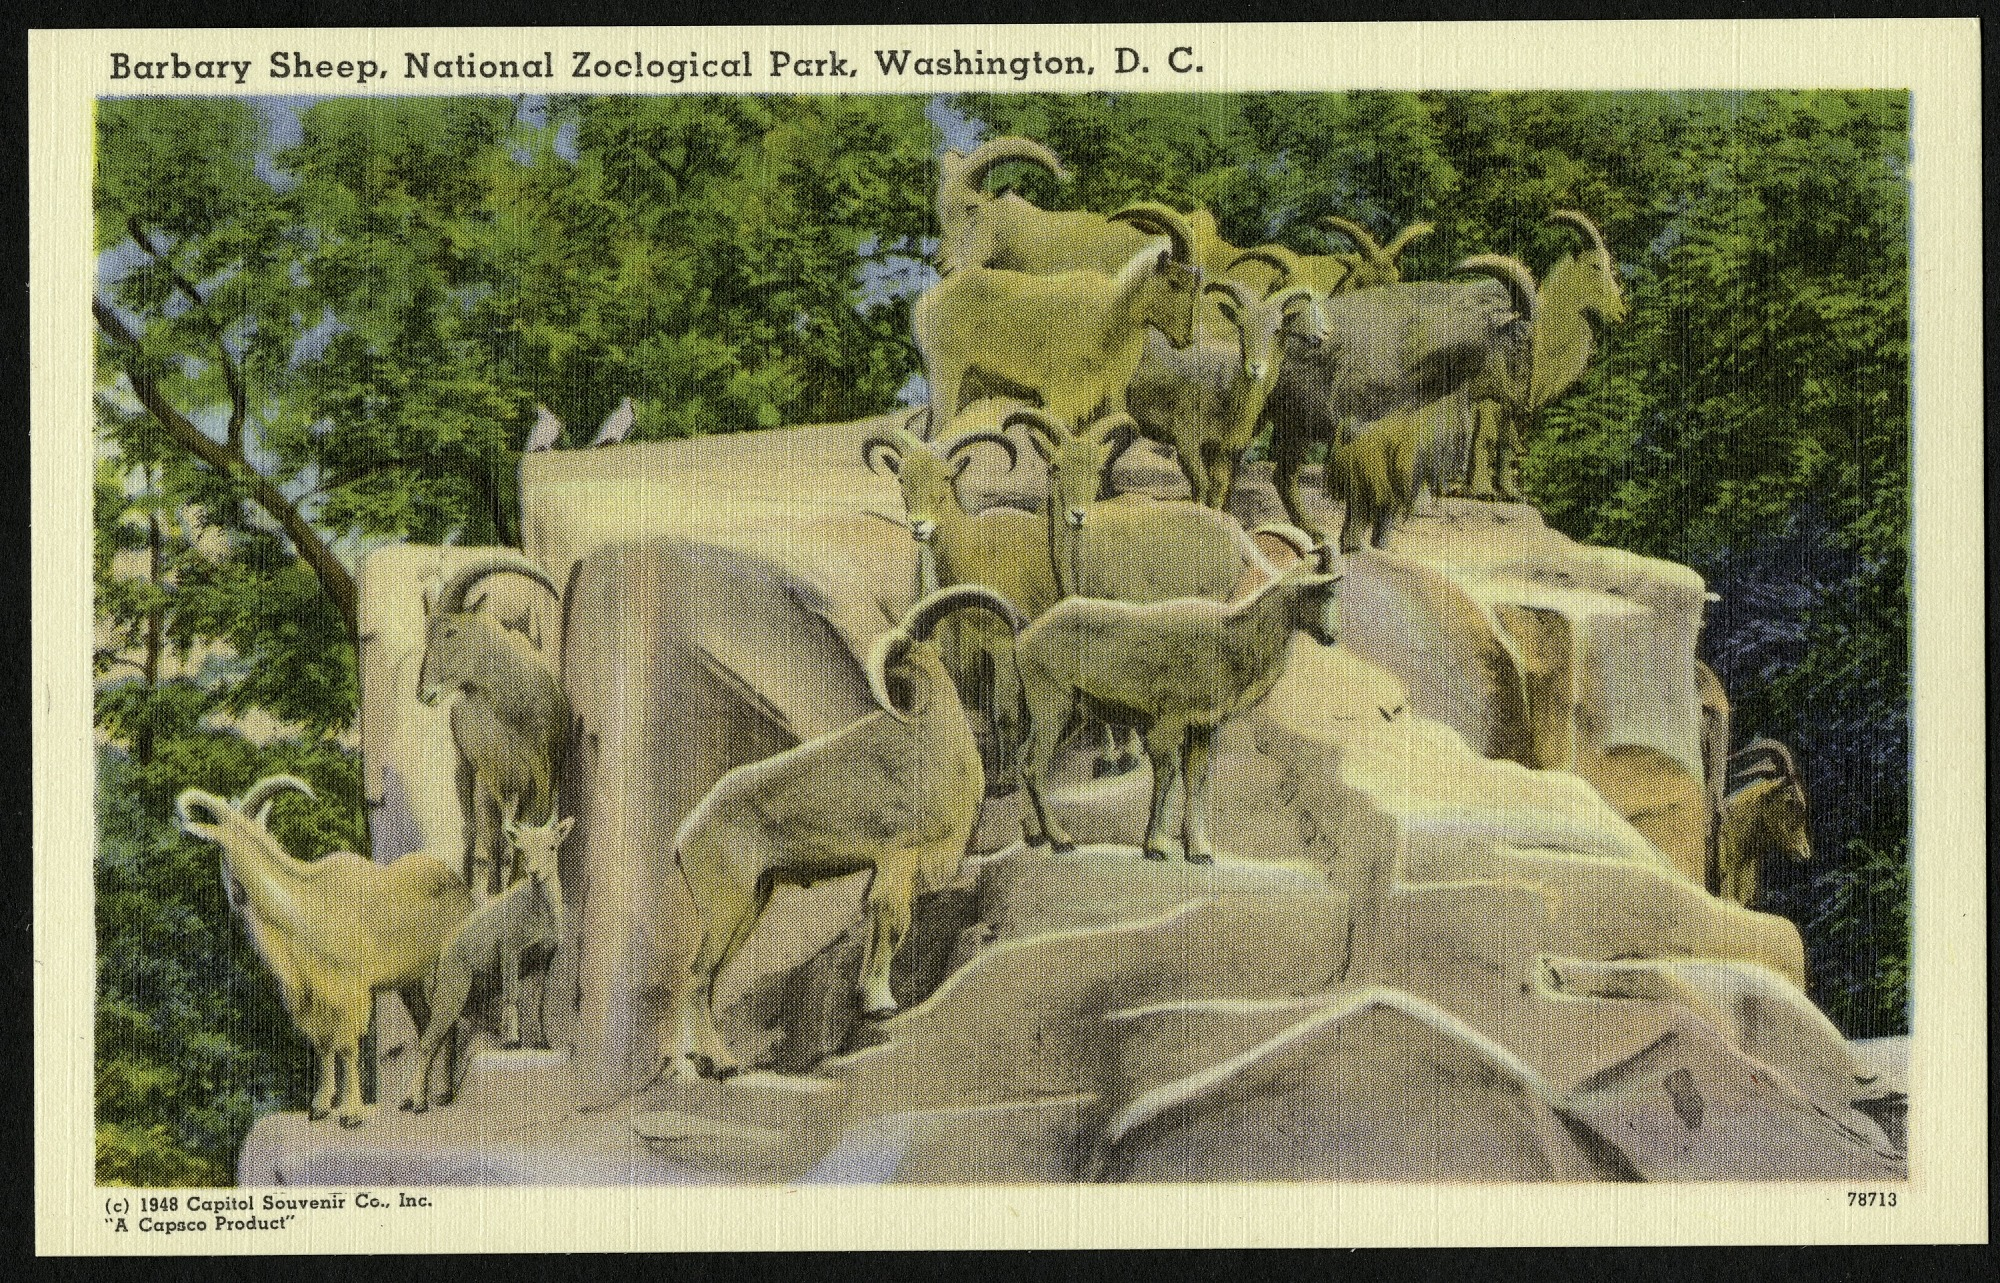 Blank Postcard of Barbary Sheep at the Zoo